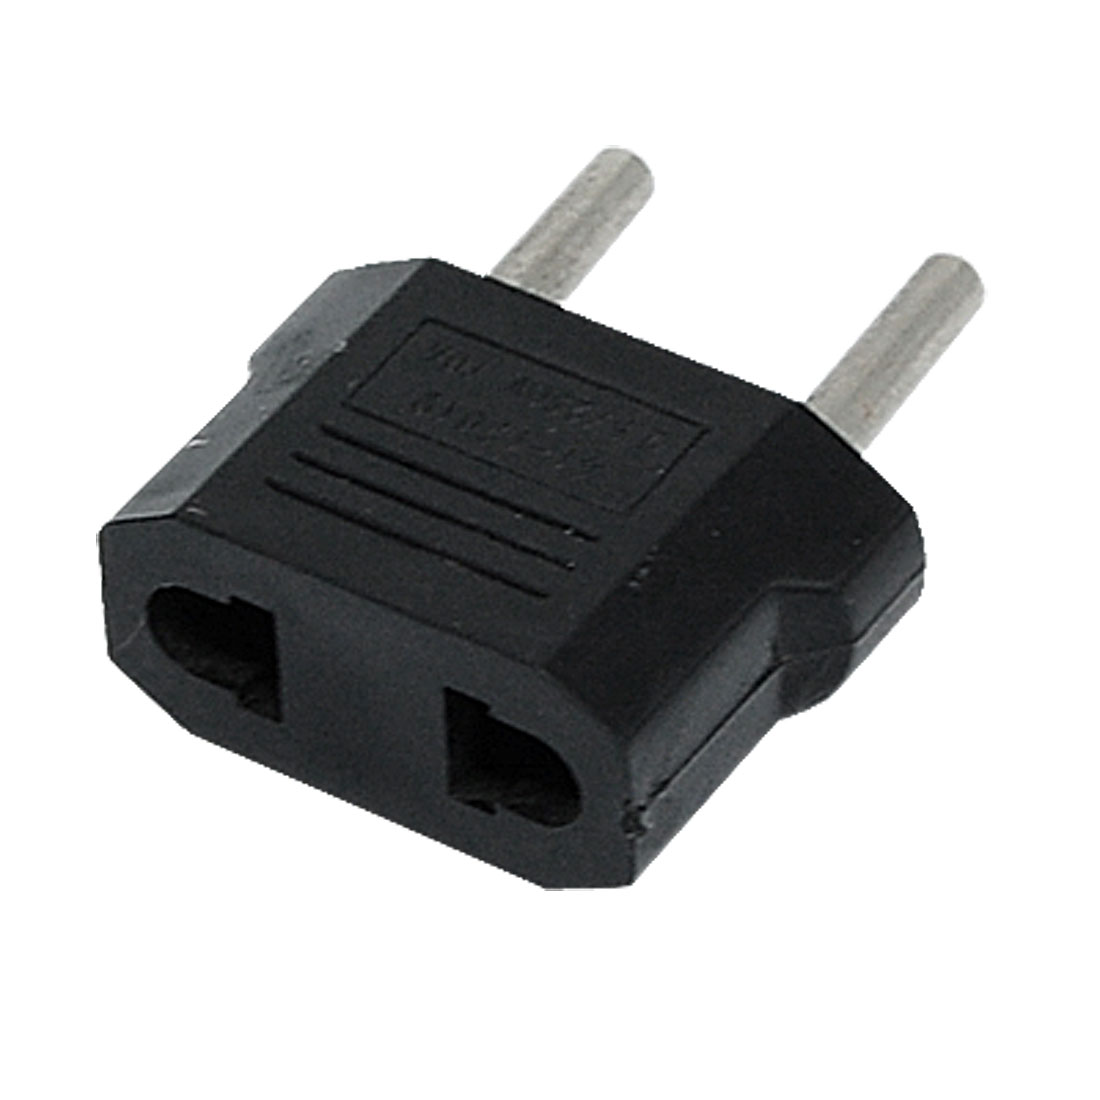 EU Plug 250VAC 10A Travel AC Power Converter Adapter